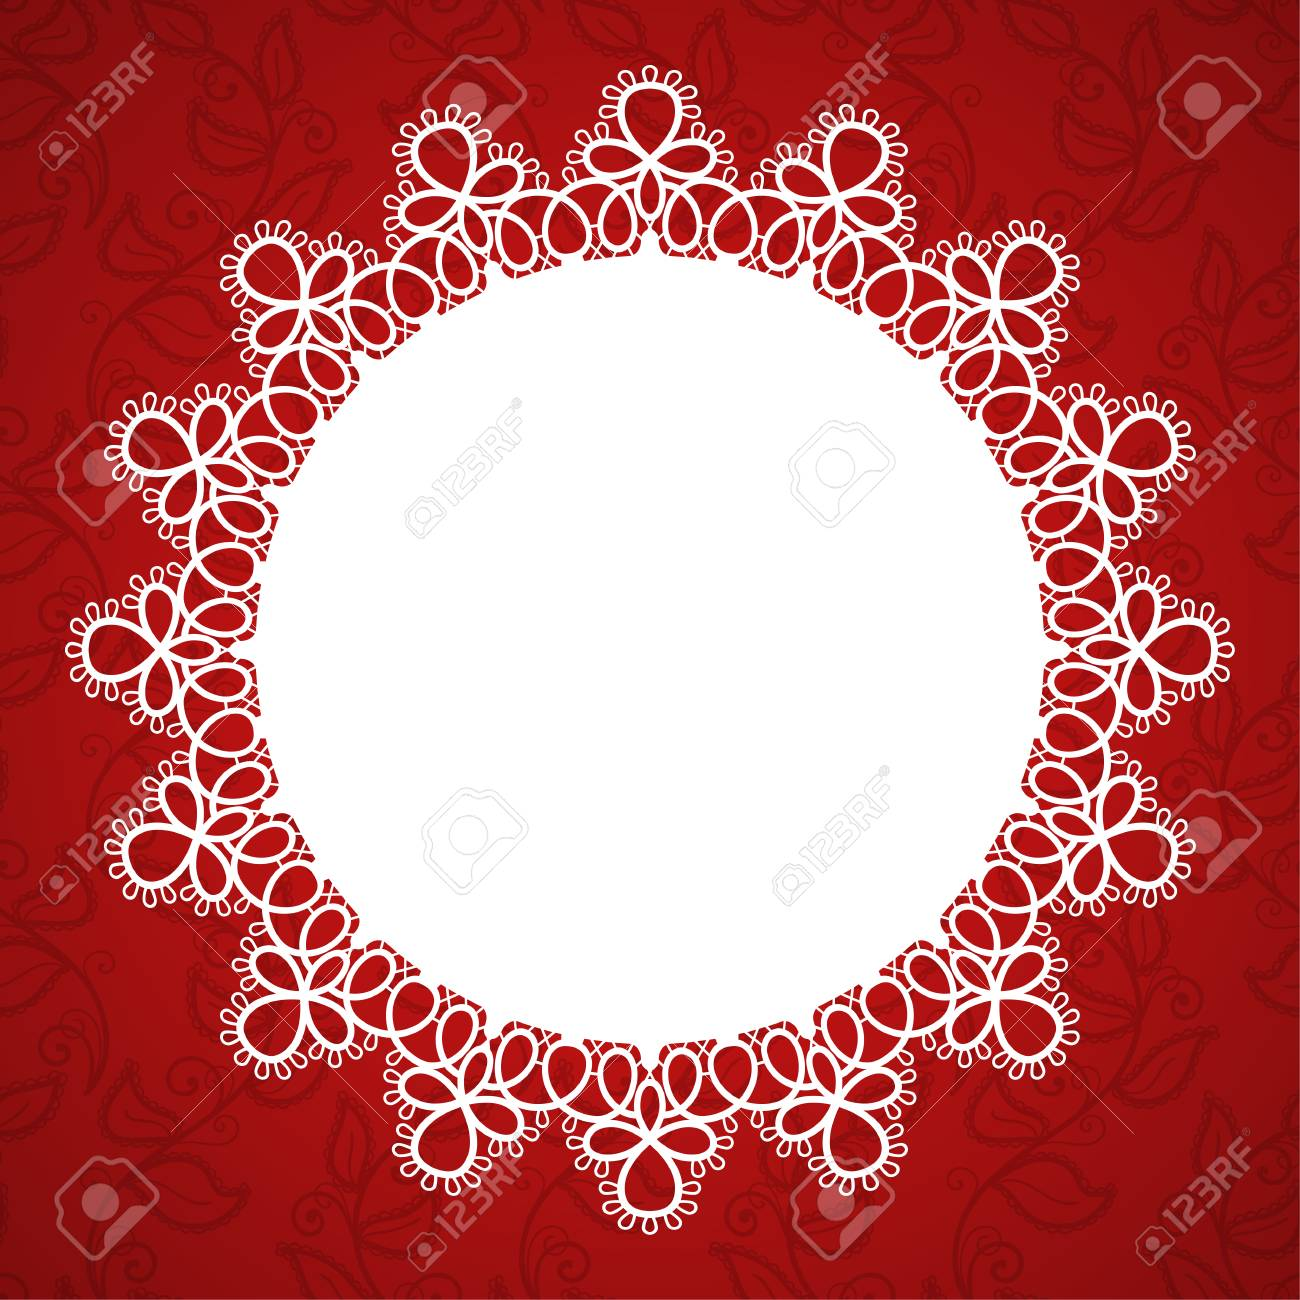 Round Lace Frame With A Place For Text. Background For Wedding ...